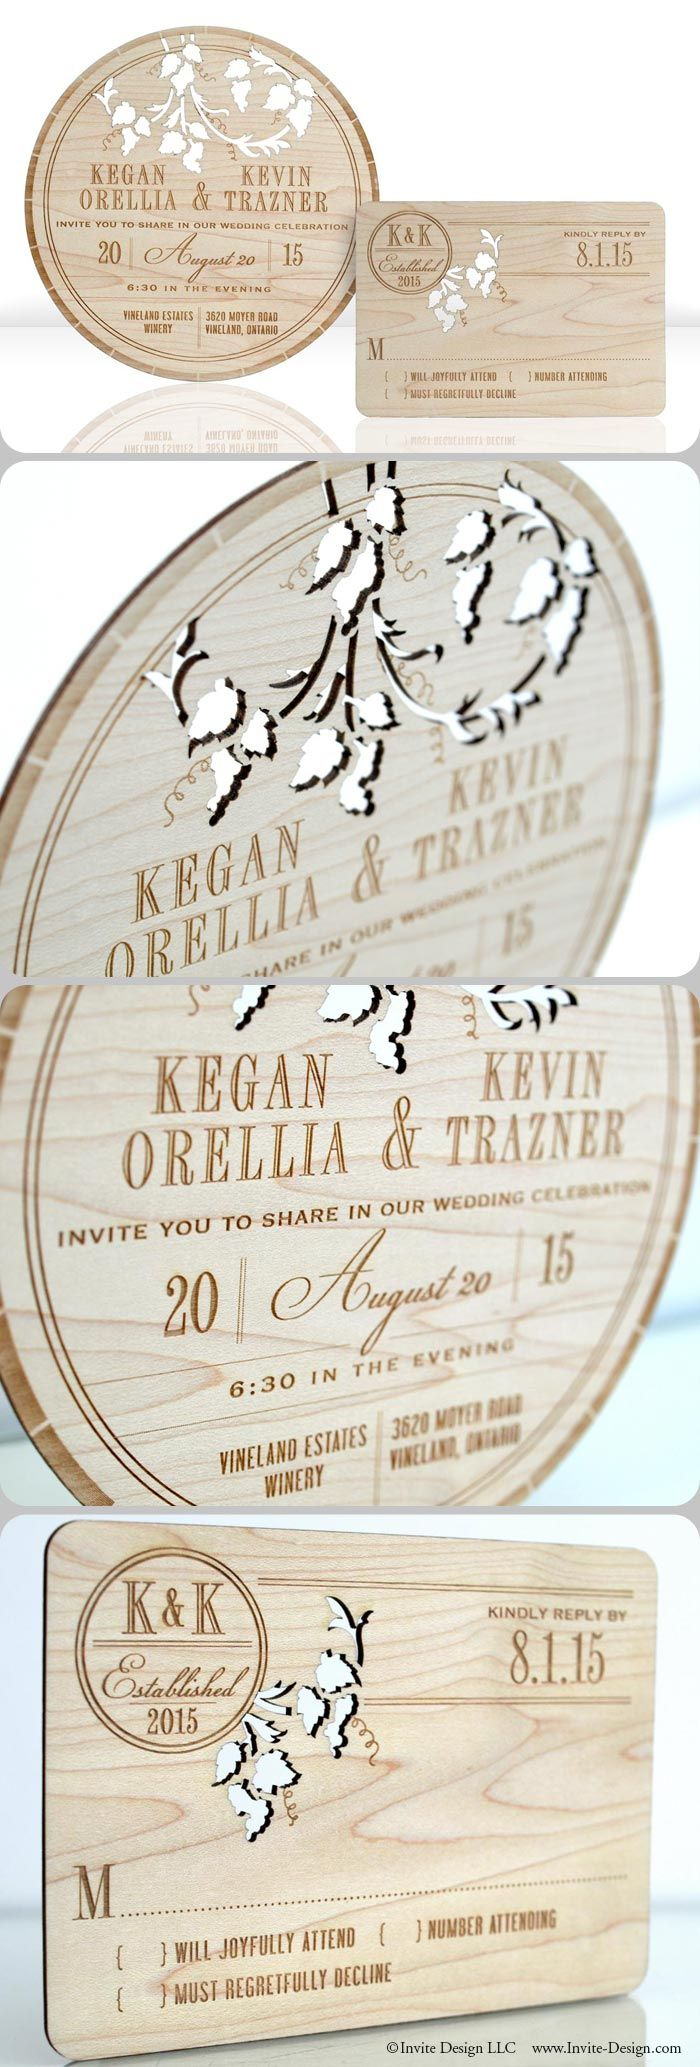 Vineyard Wedding Invitations Are Laser Cut From Sturdy Maple Planks. These Wine  Themed Invitations And Accompanying Response Cards Feature Stunning  Engraved ...